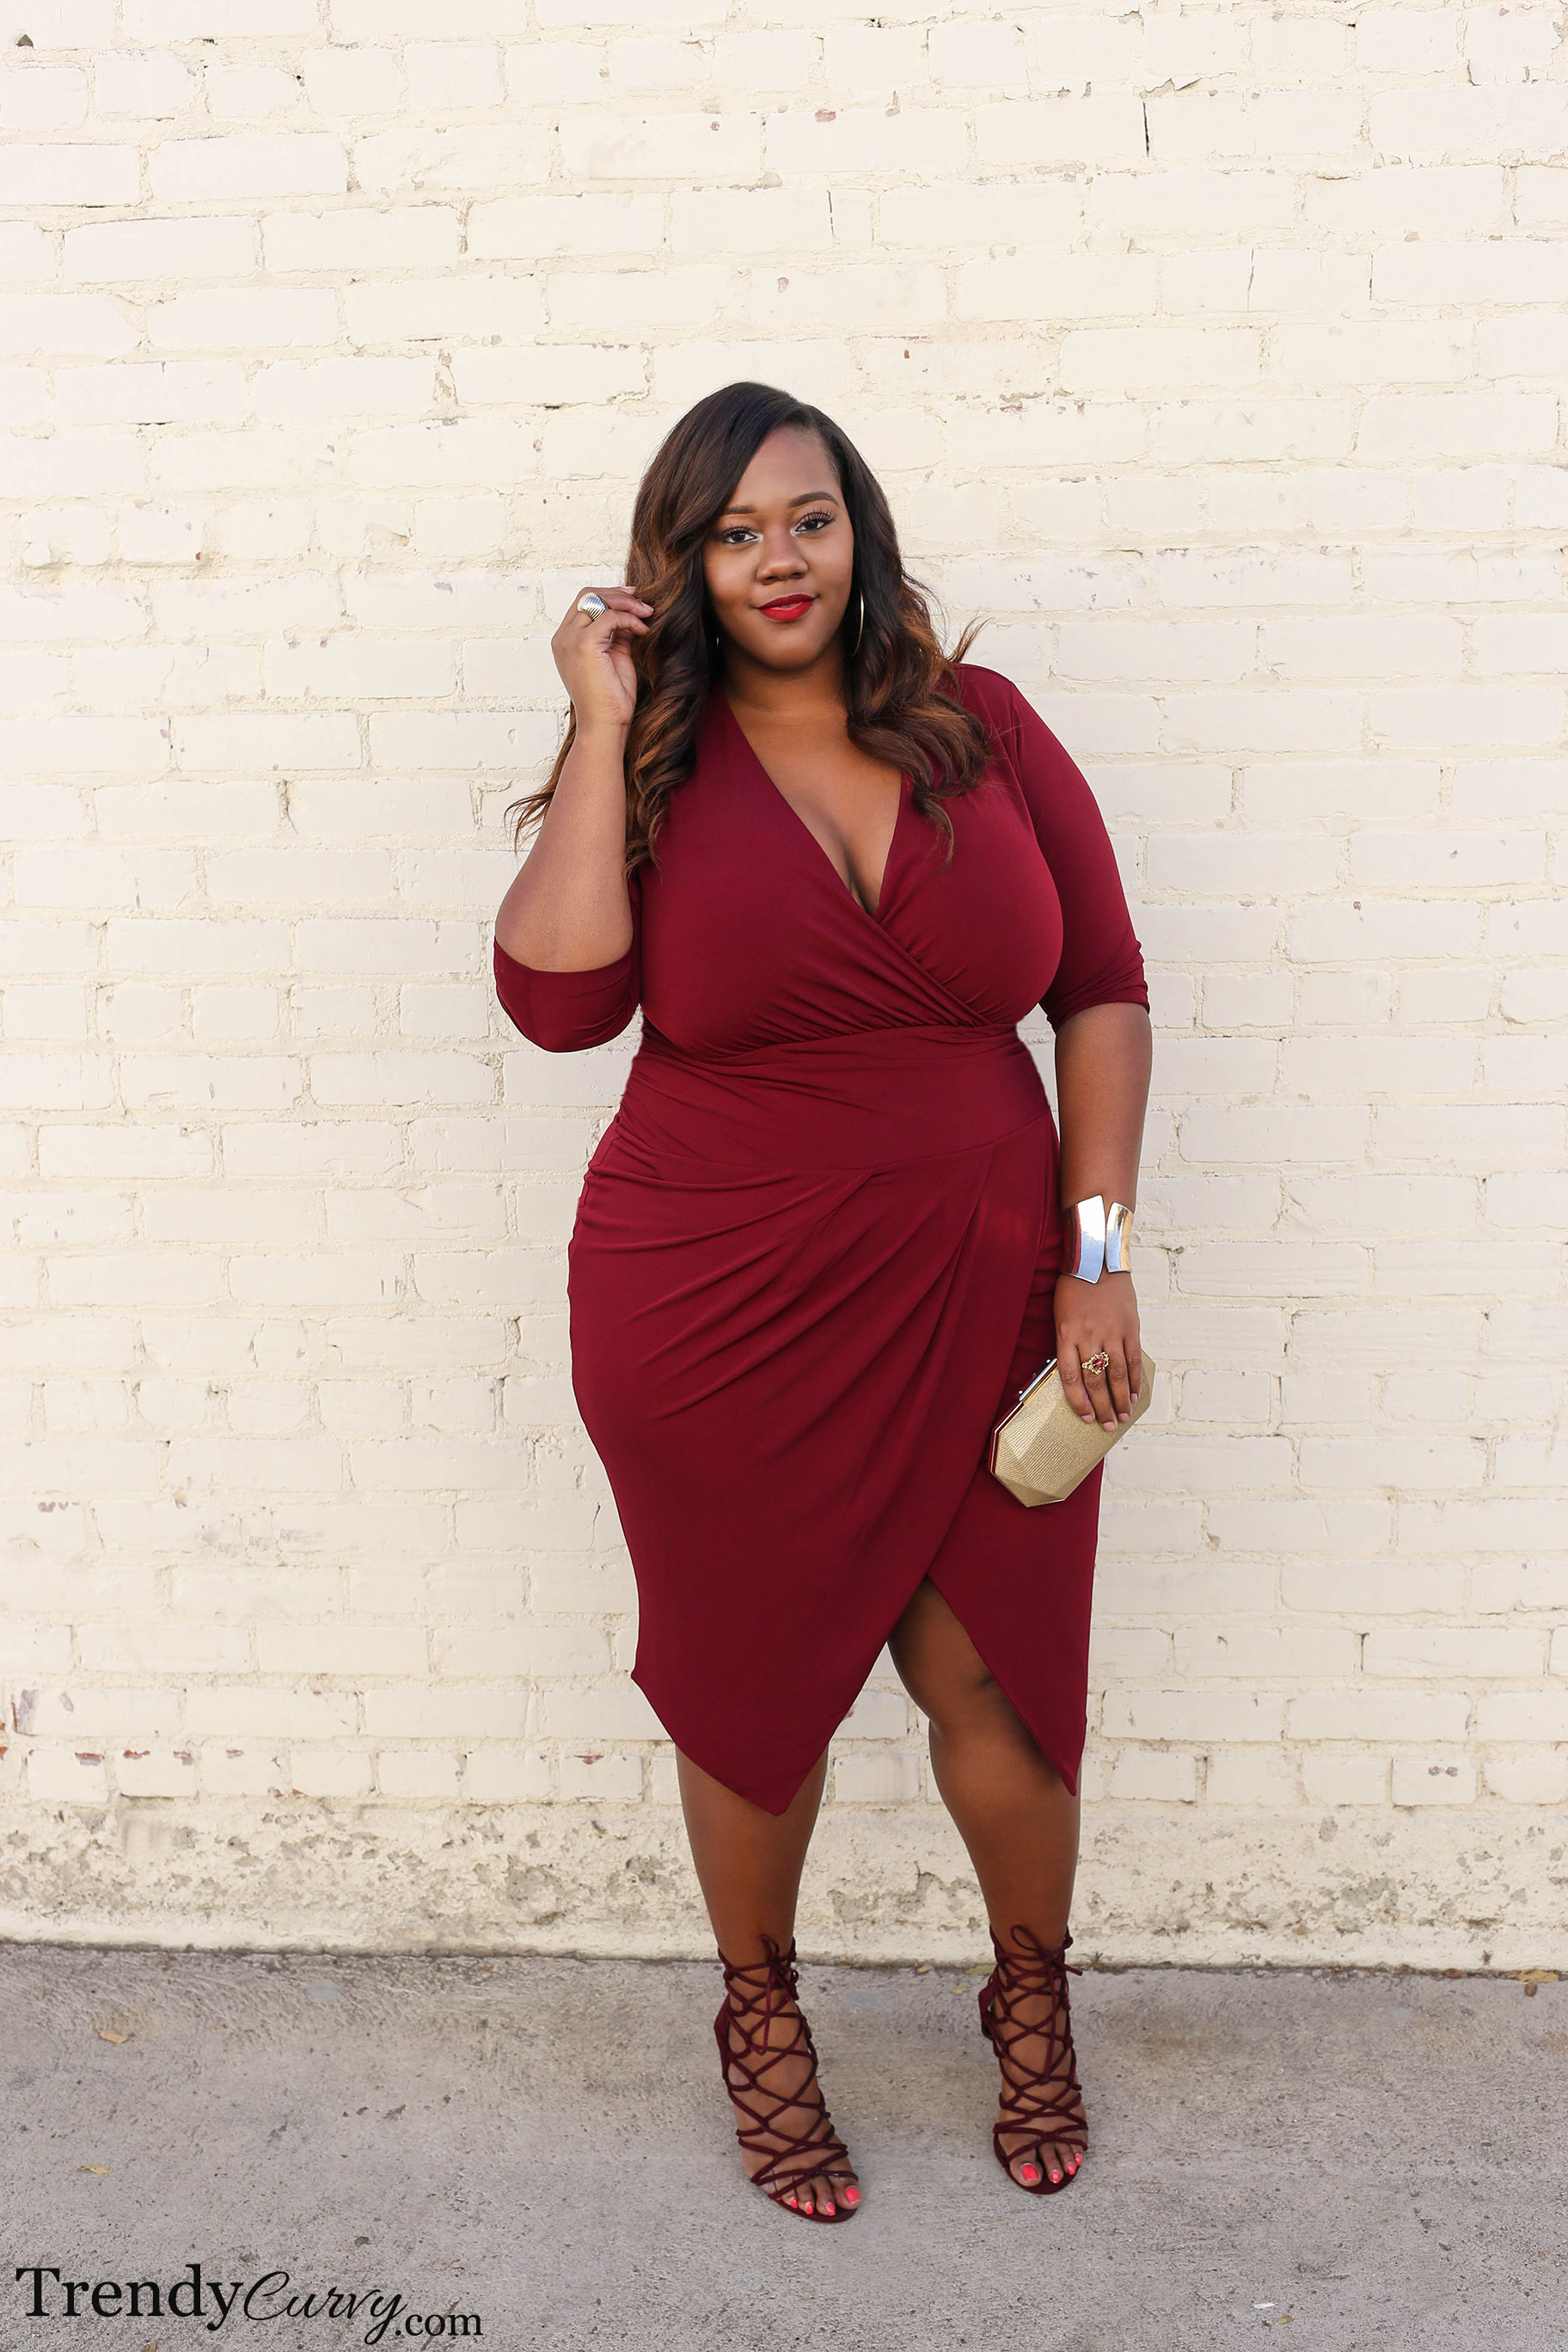 f0a1ee8969 Style   Events Archives - Trendy CurvyTrendy Curvy